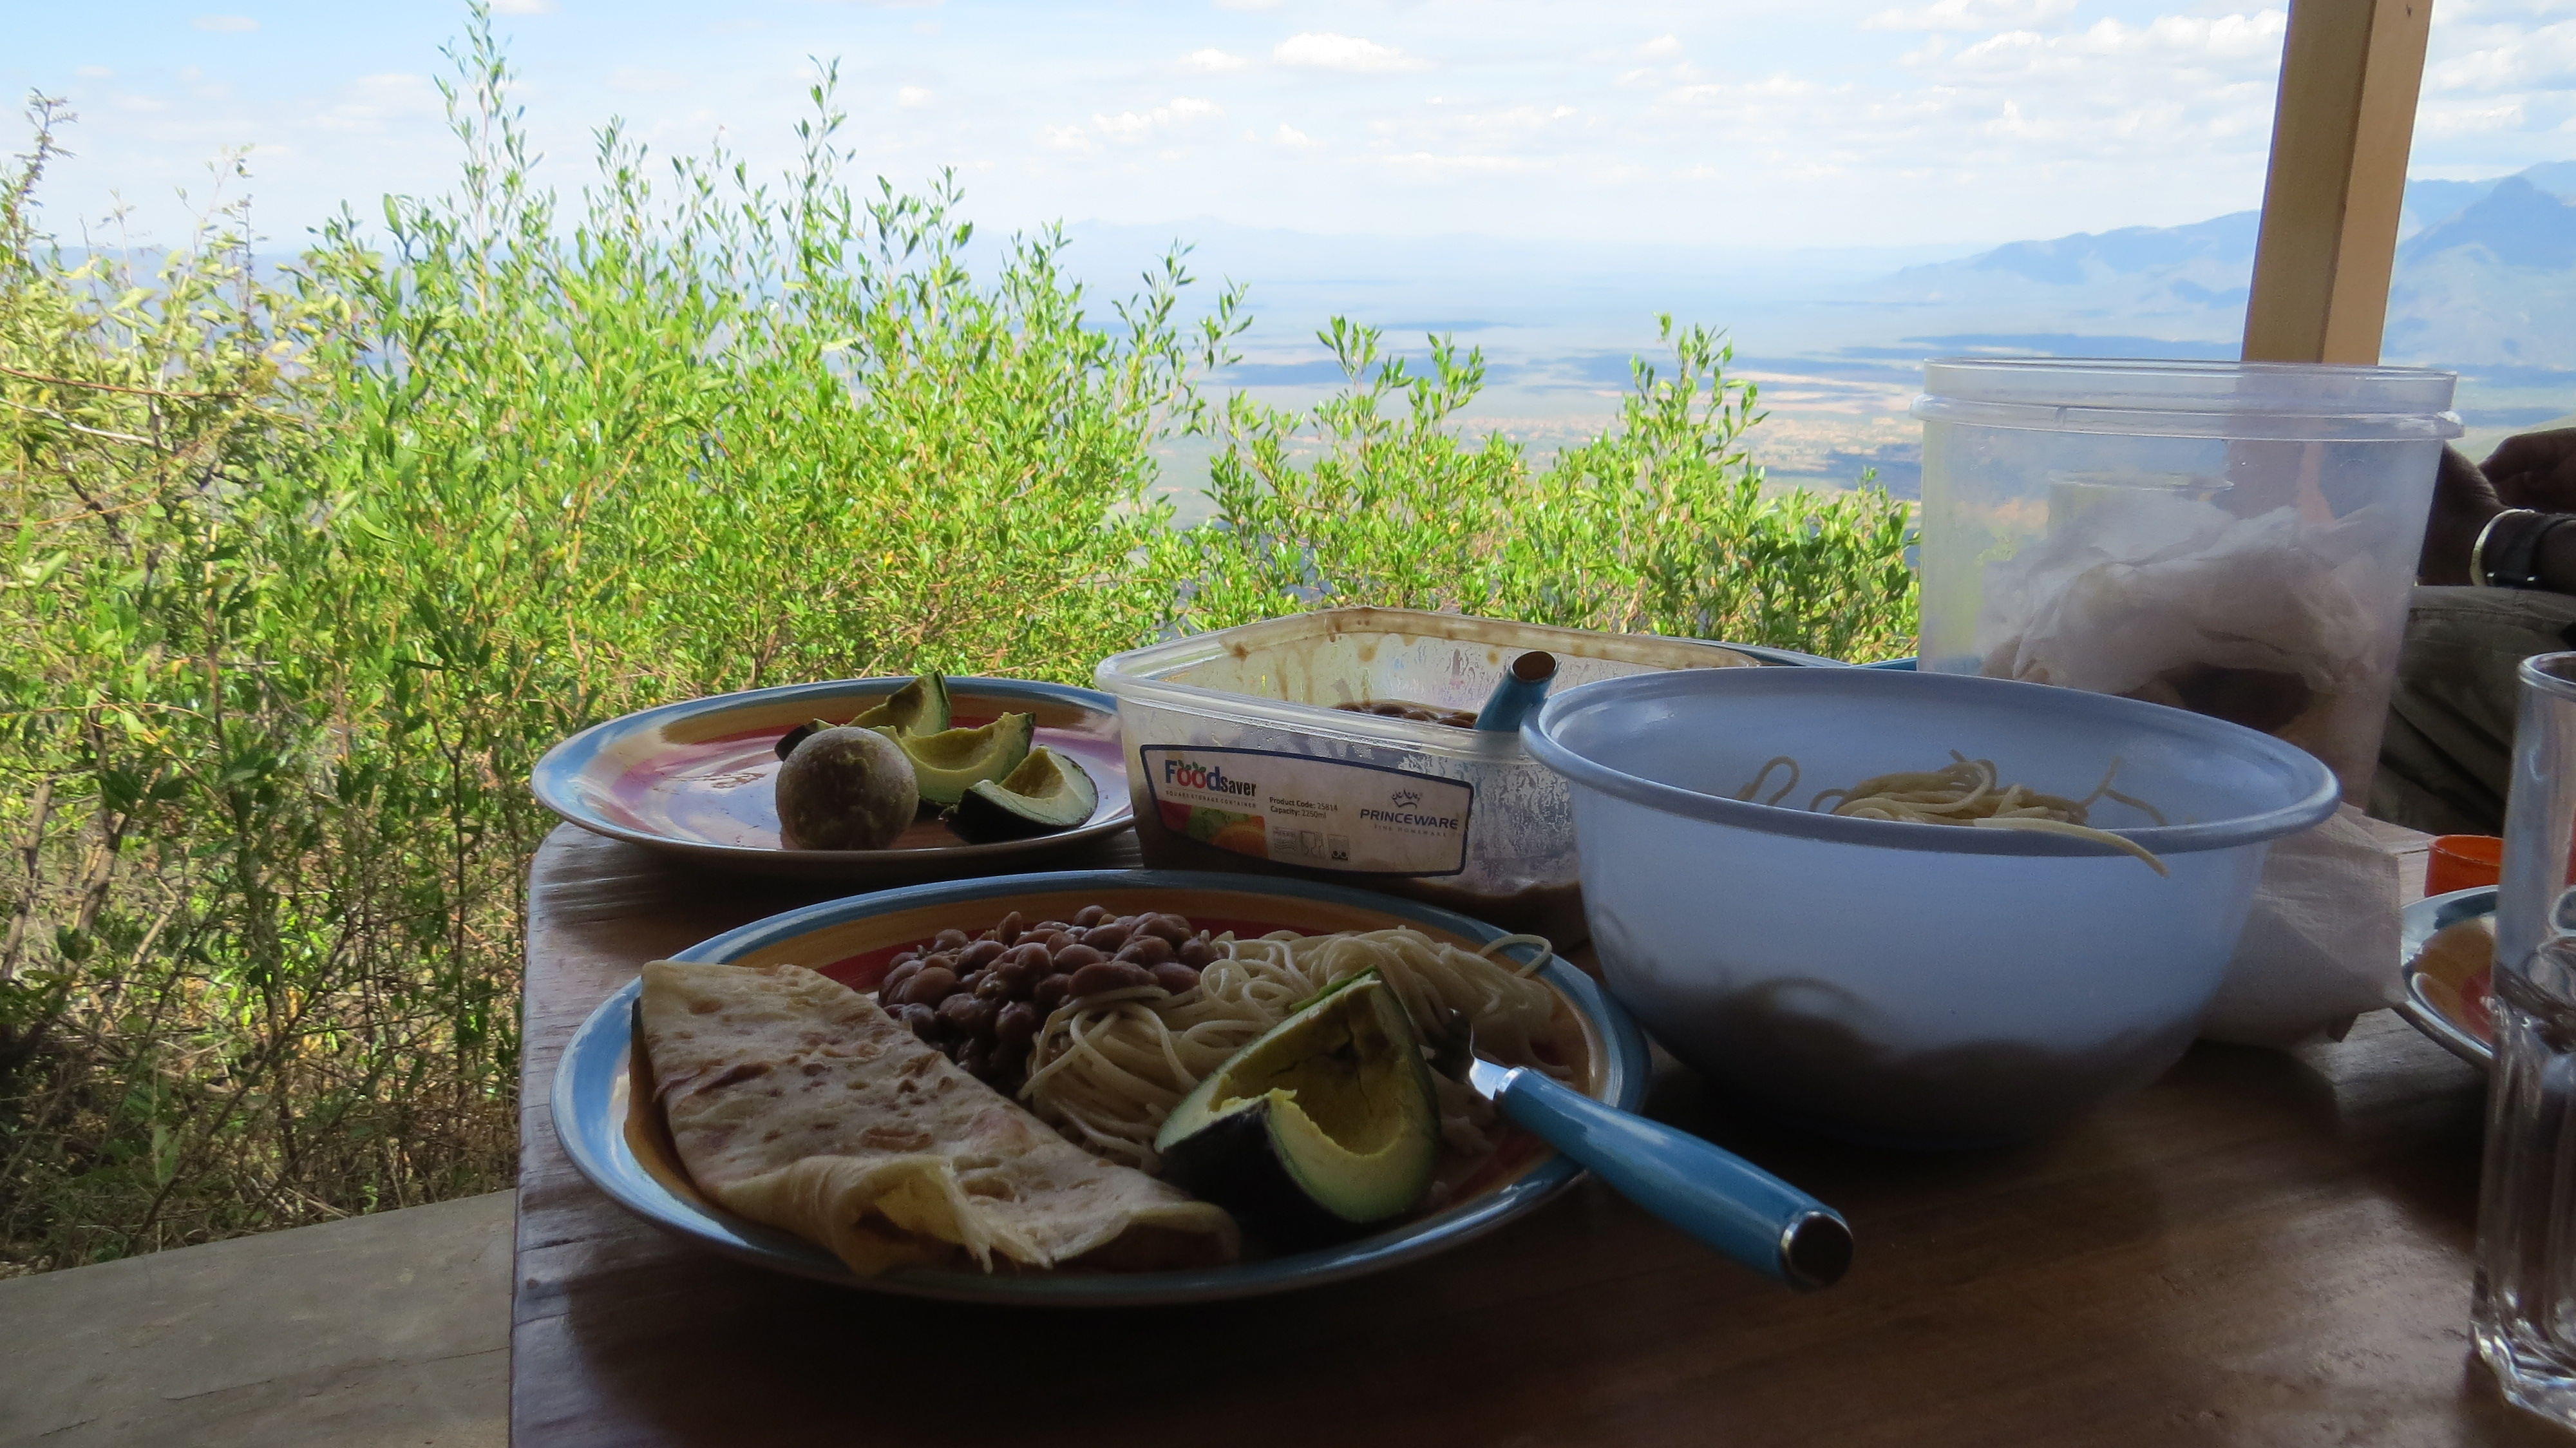 Lunch on porch of Mountain cabin in Sekerr Range.Copyright Rupi Mangat